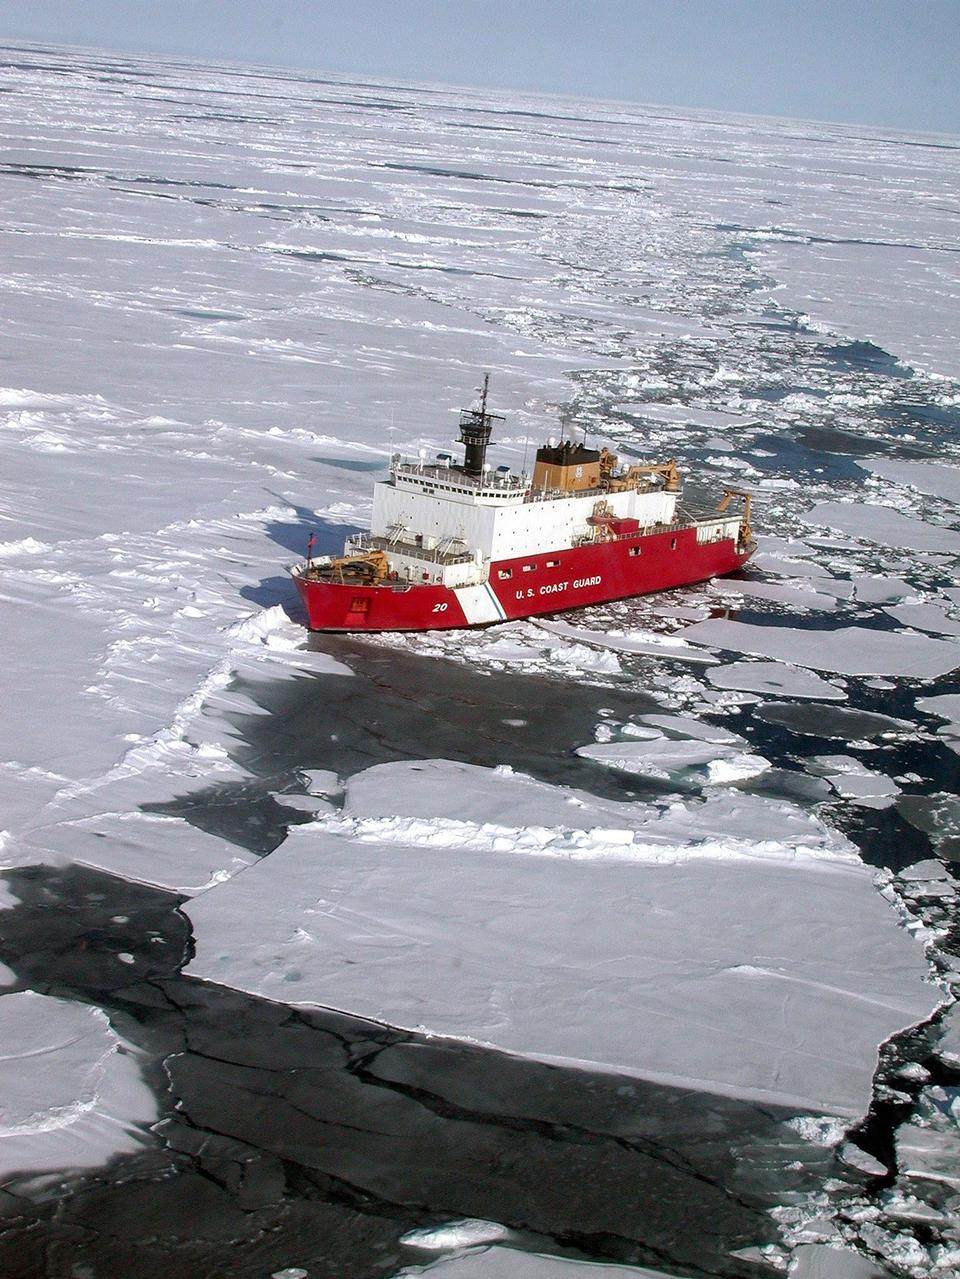 Free Photos: Icebreaker ship on the ice in the sea. | publicdomain